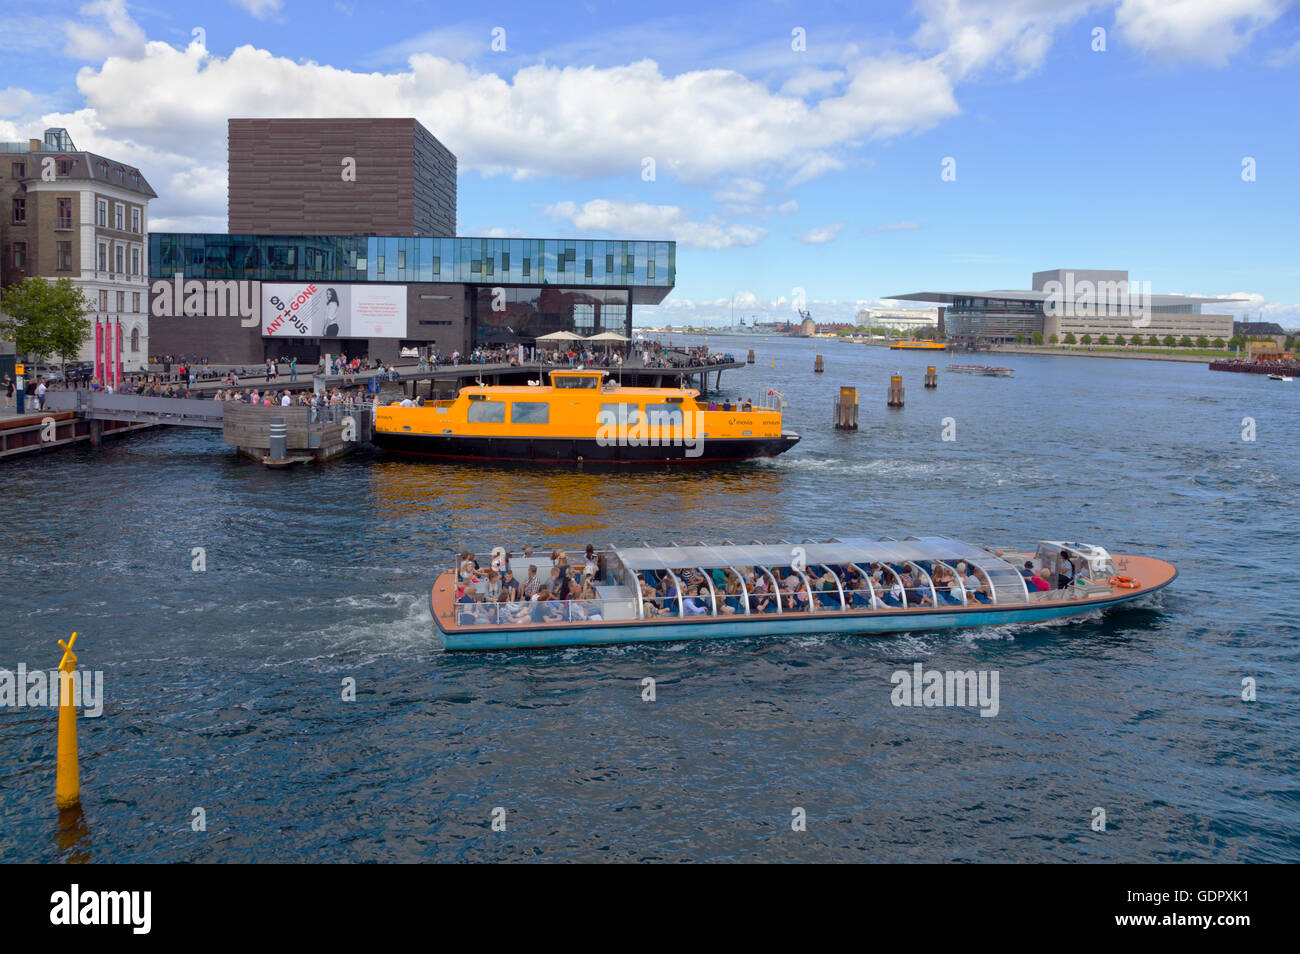 A canal cruise boat and a yellow harbour bus at the Royal Playhouse in Copenhagen. The Royal Opera House opposite - Stock Image